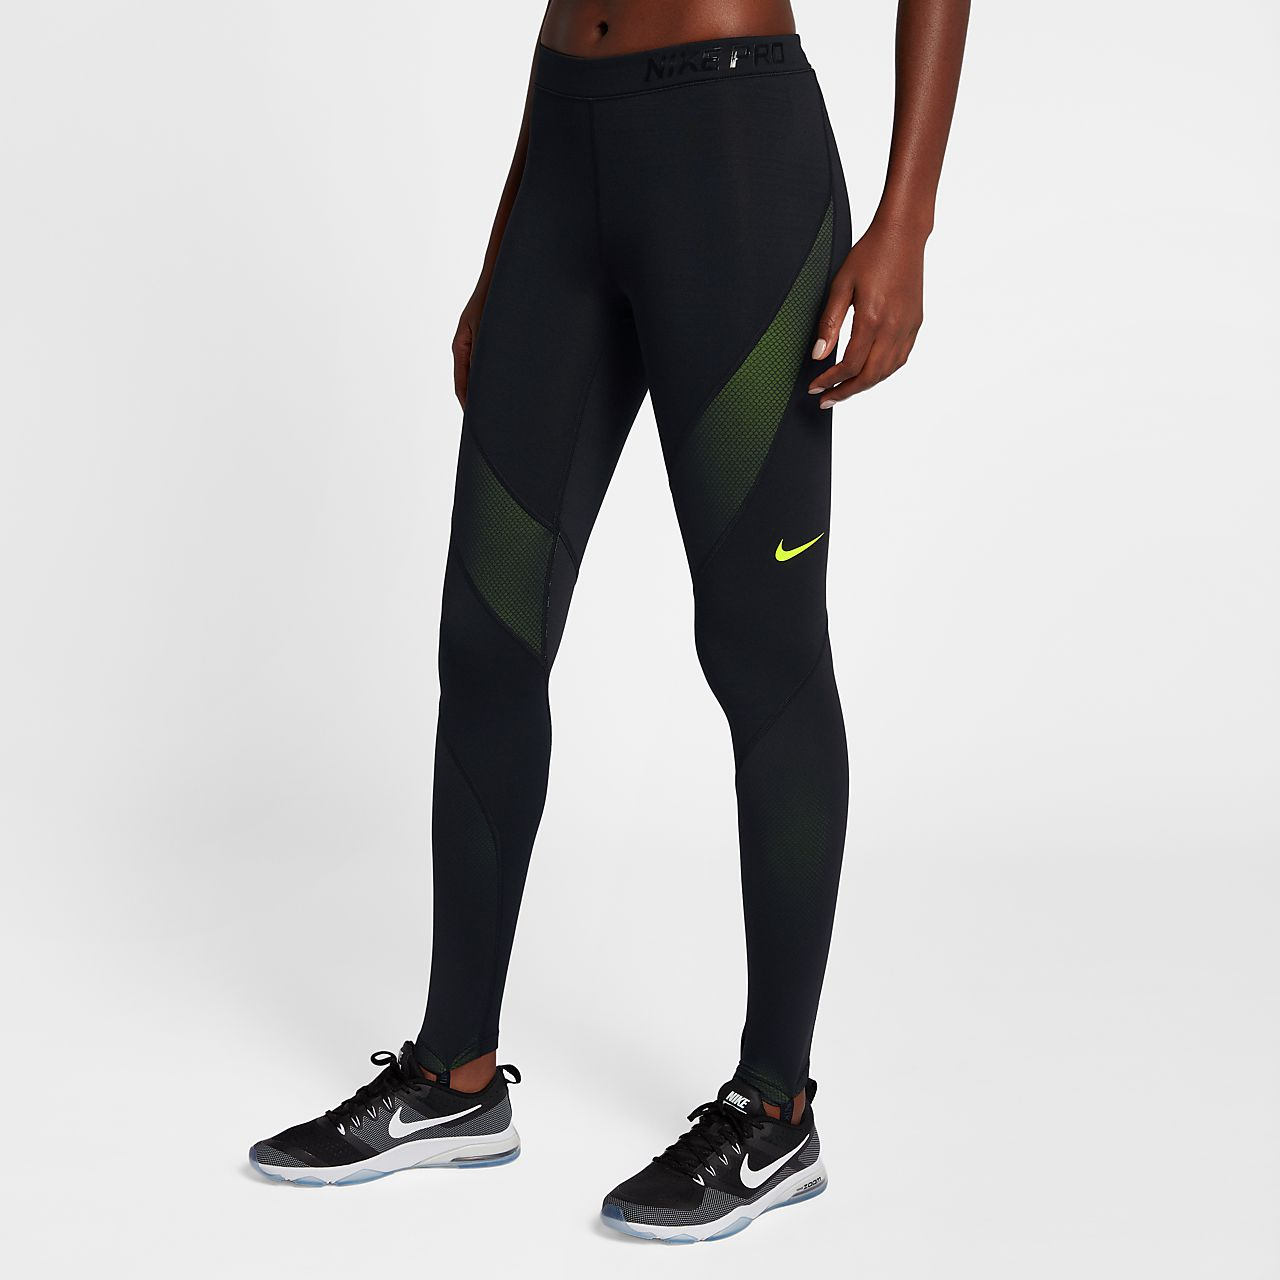 nike shoes volt color nike tights women 907994